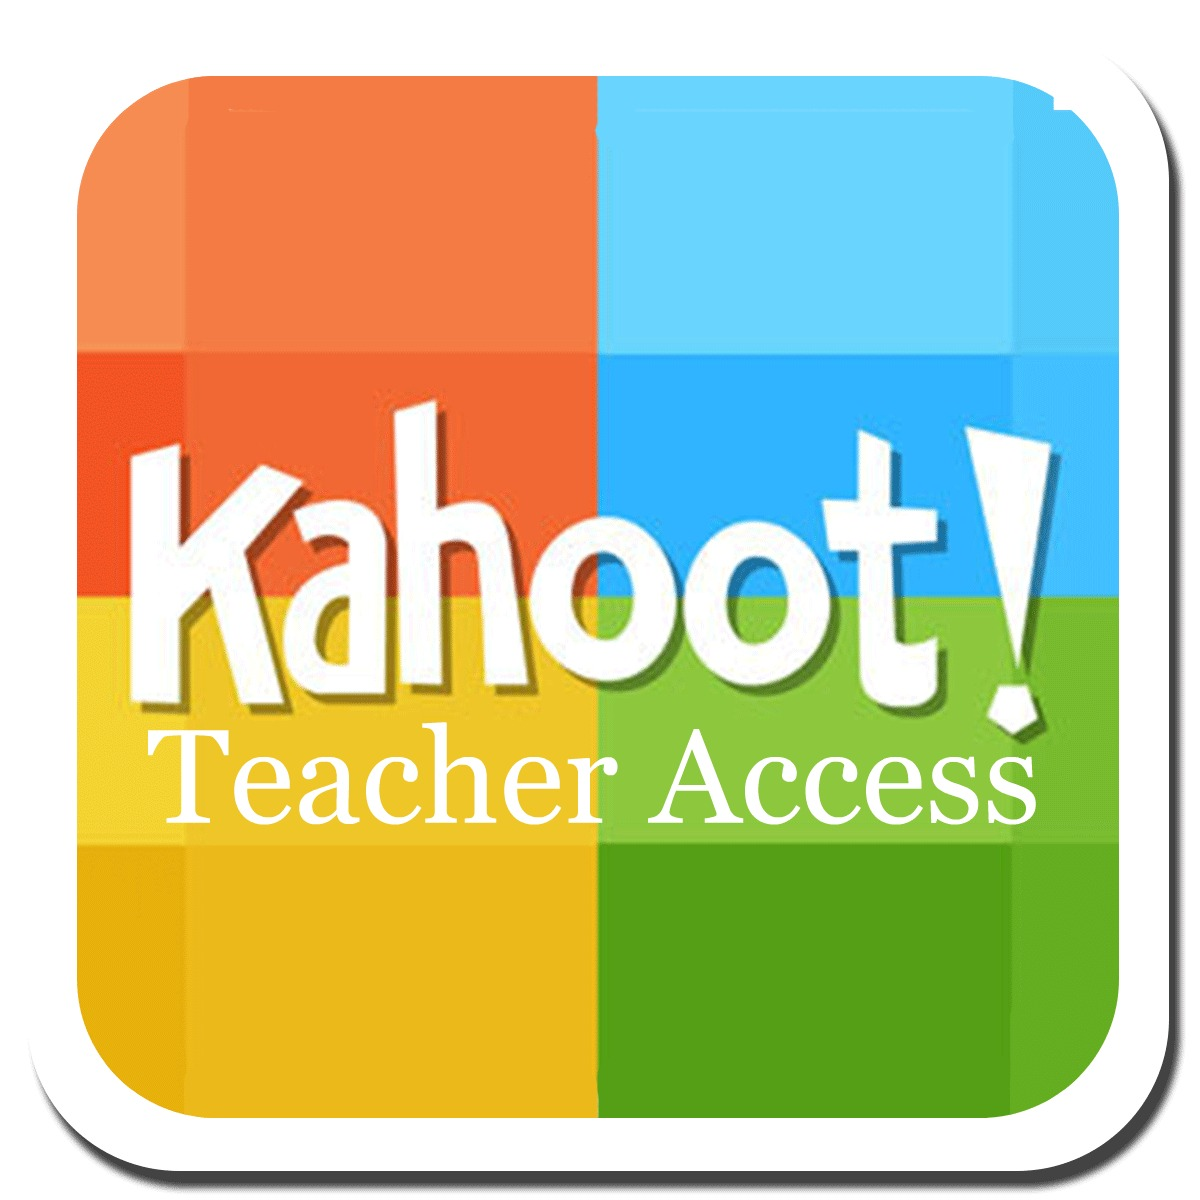 KahootTeacherAccess